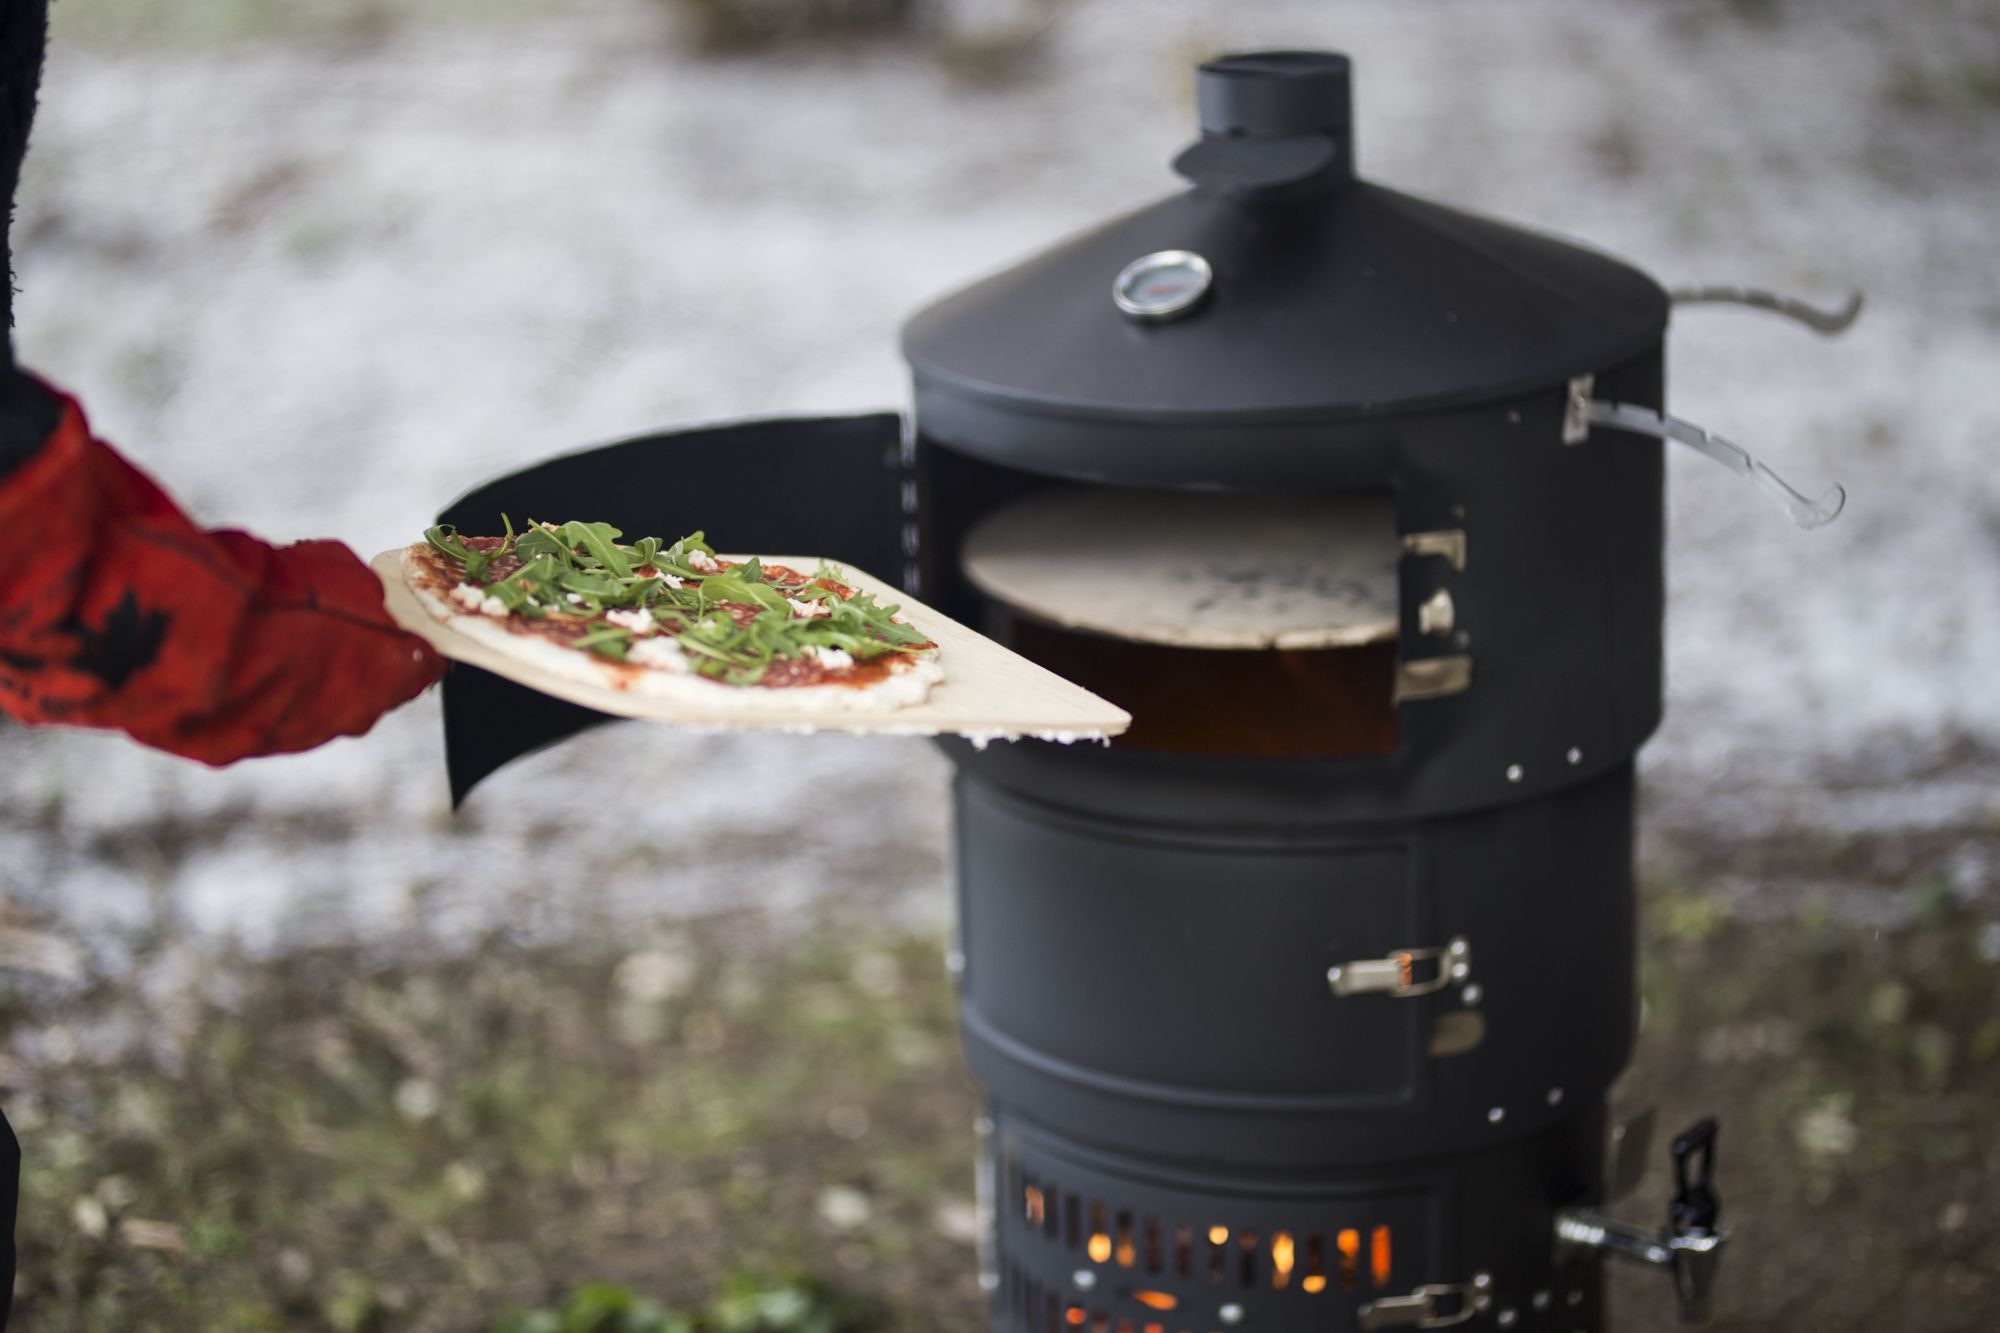 The 'Kitchen in a Backpack' that's cooking up a crowdfunding storm